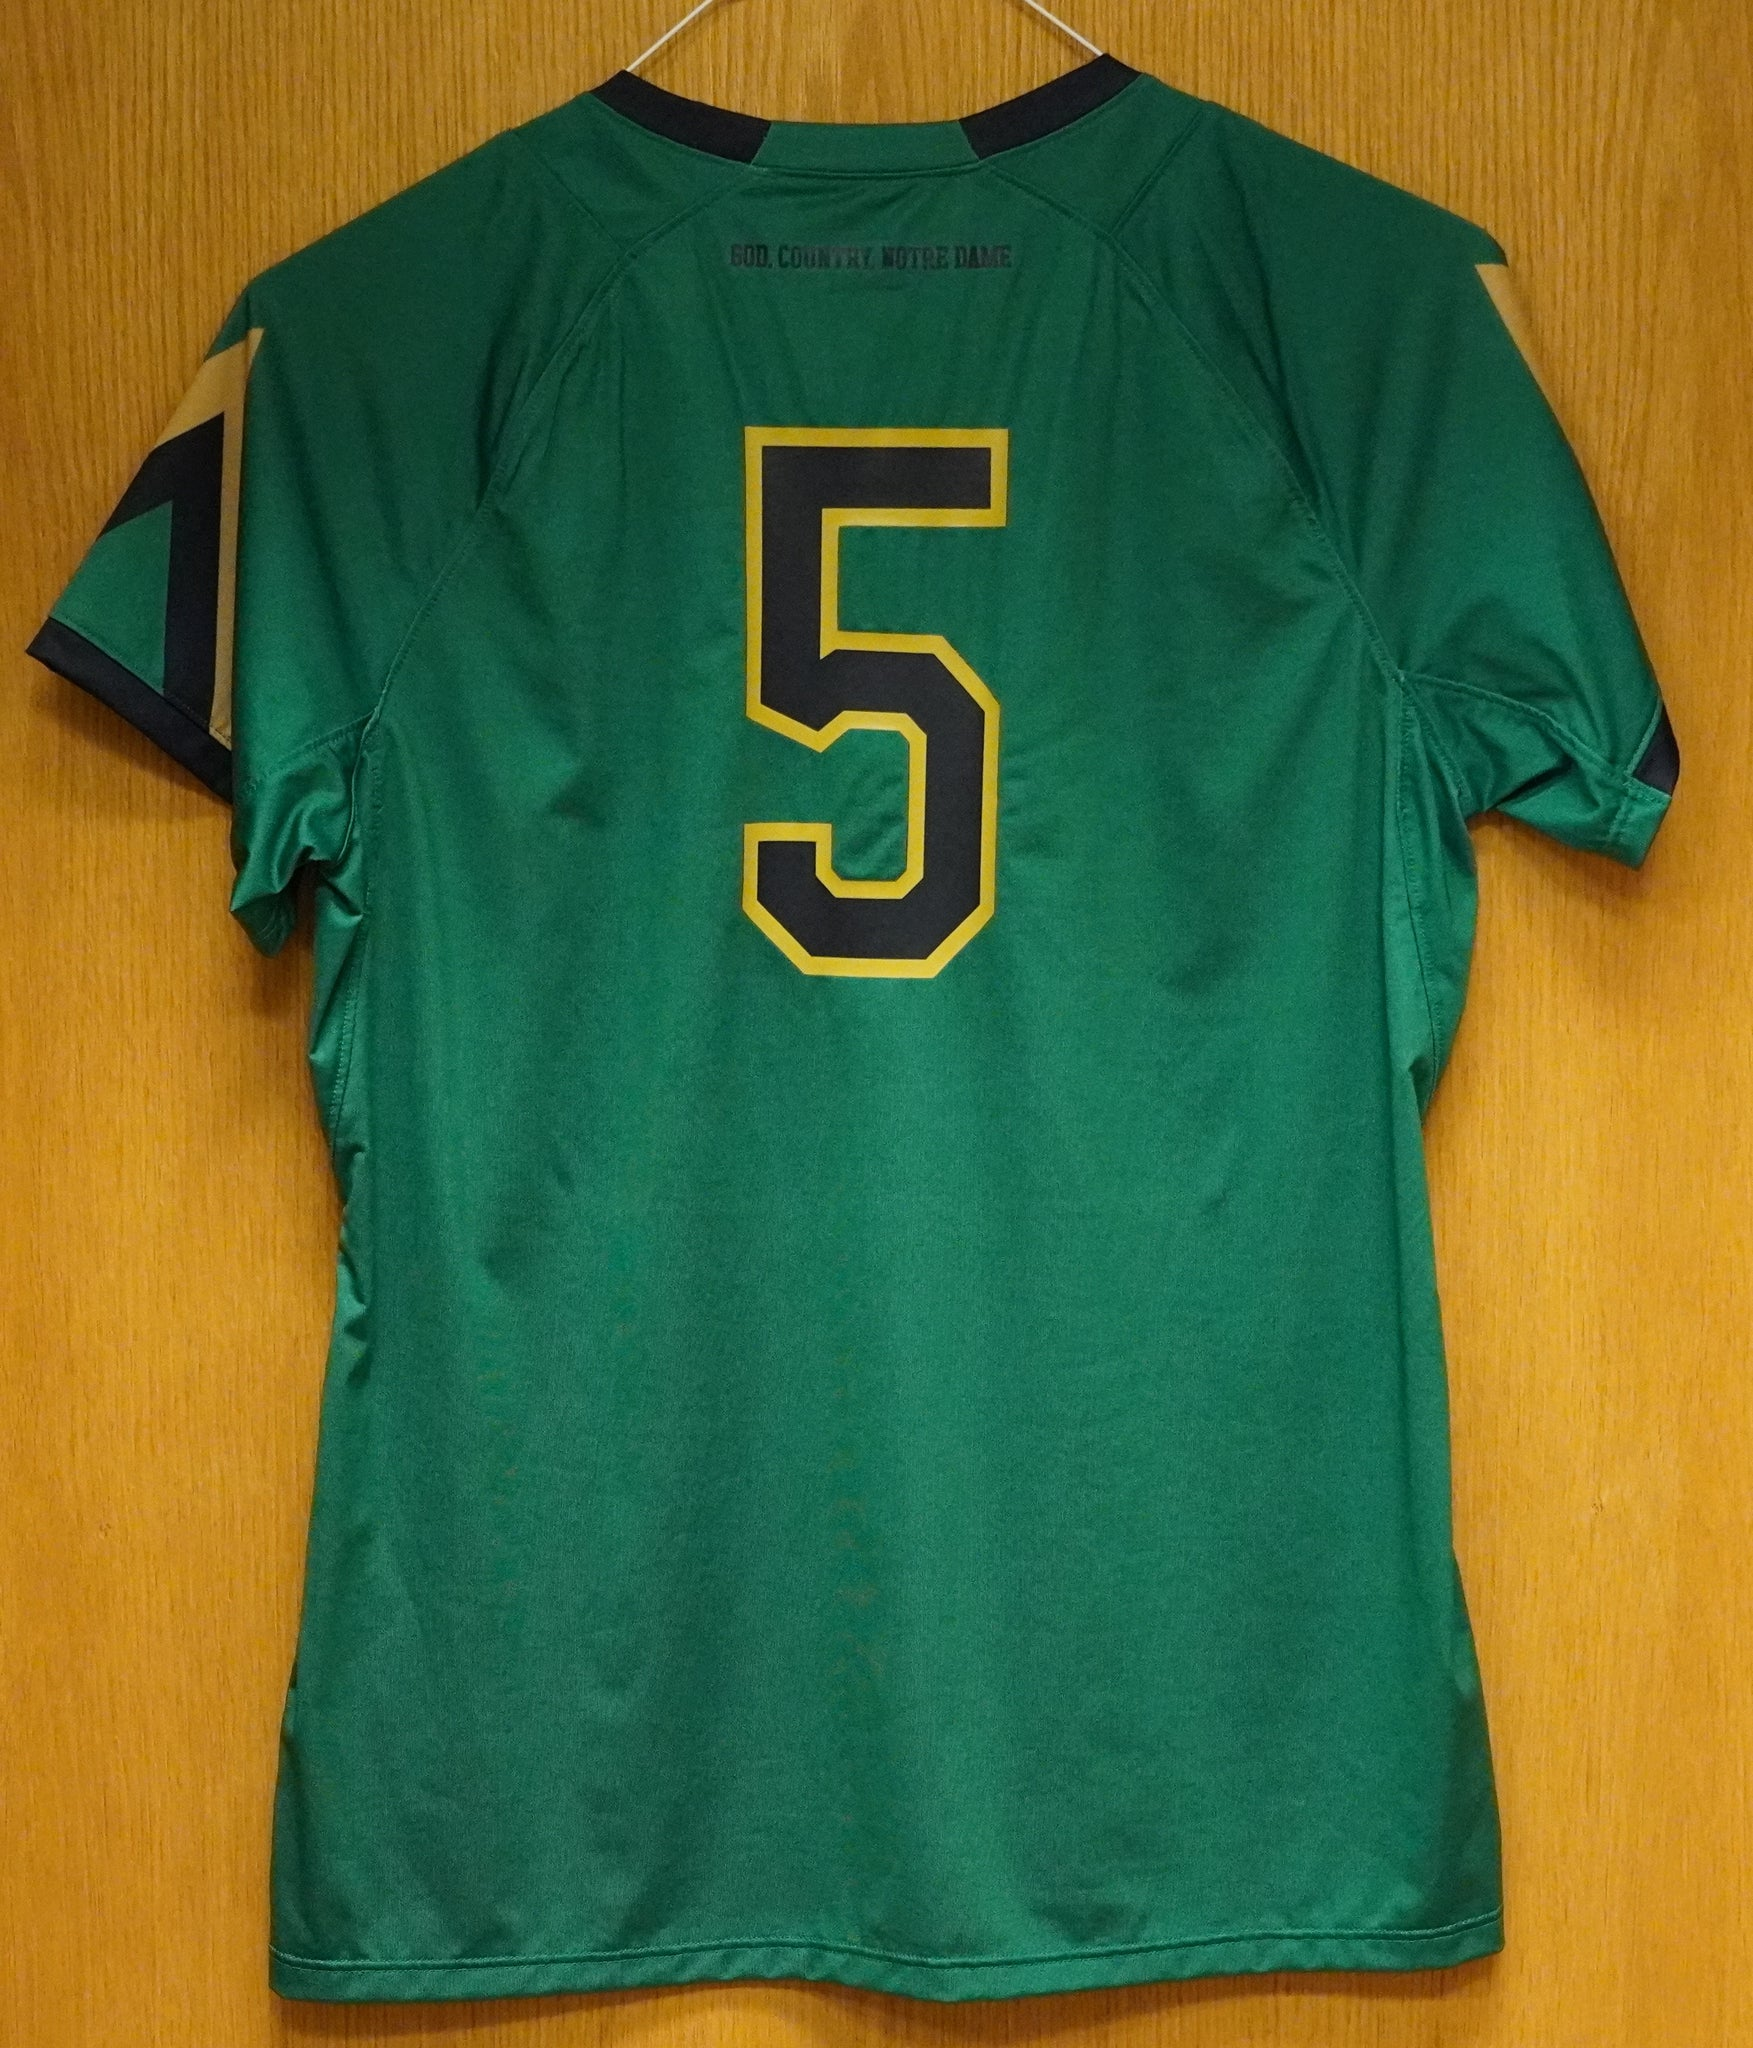 GAME WORN WOMEN'S SOCCER JERSEY #5 (Large)